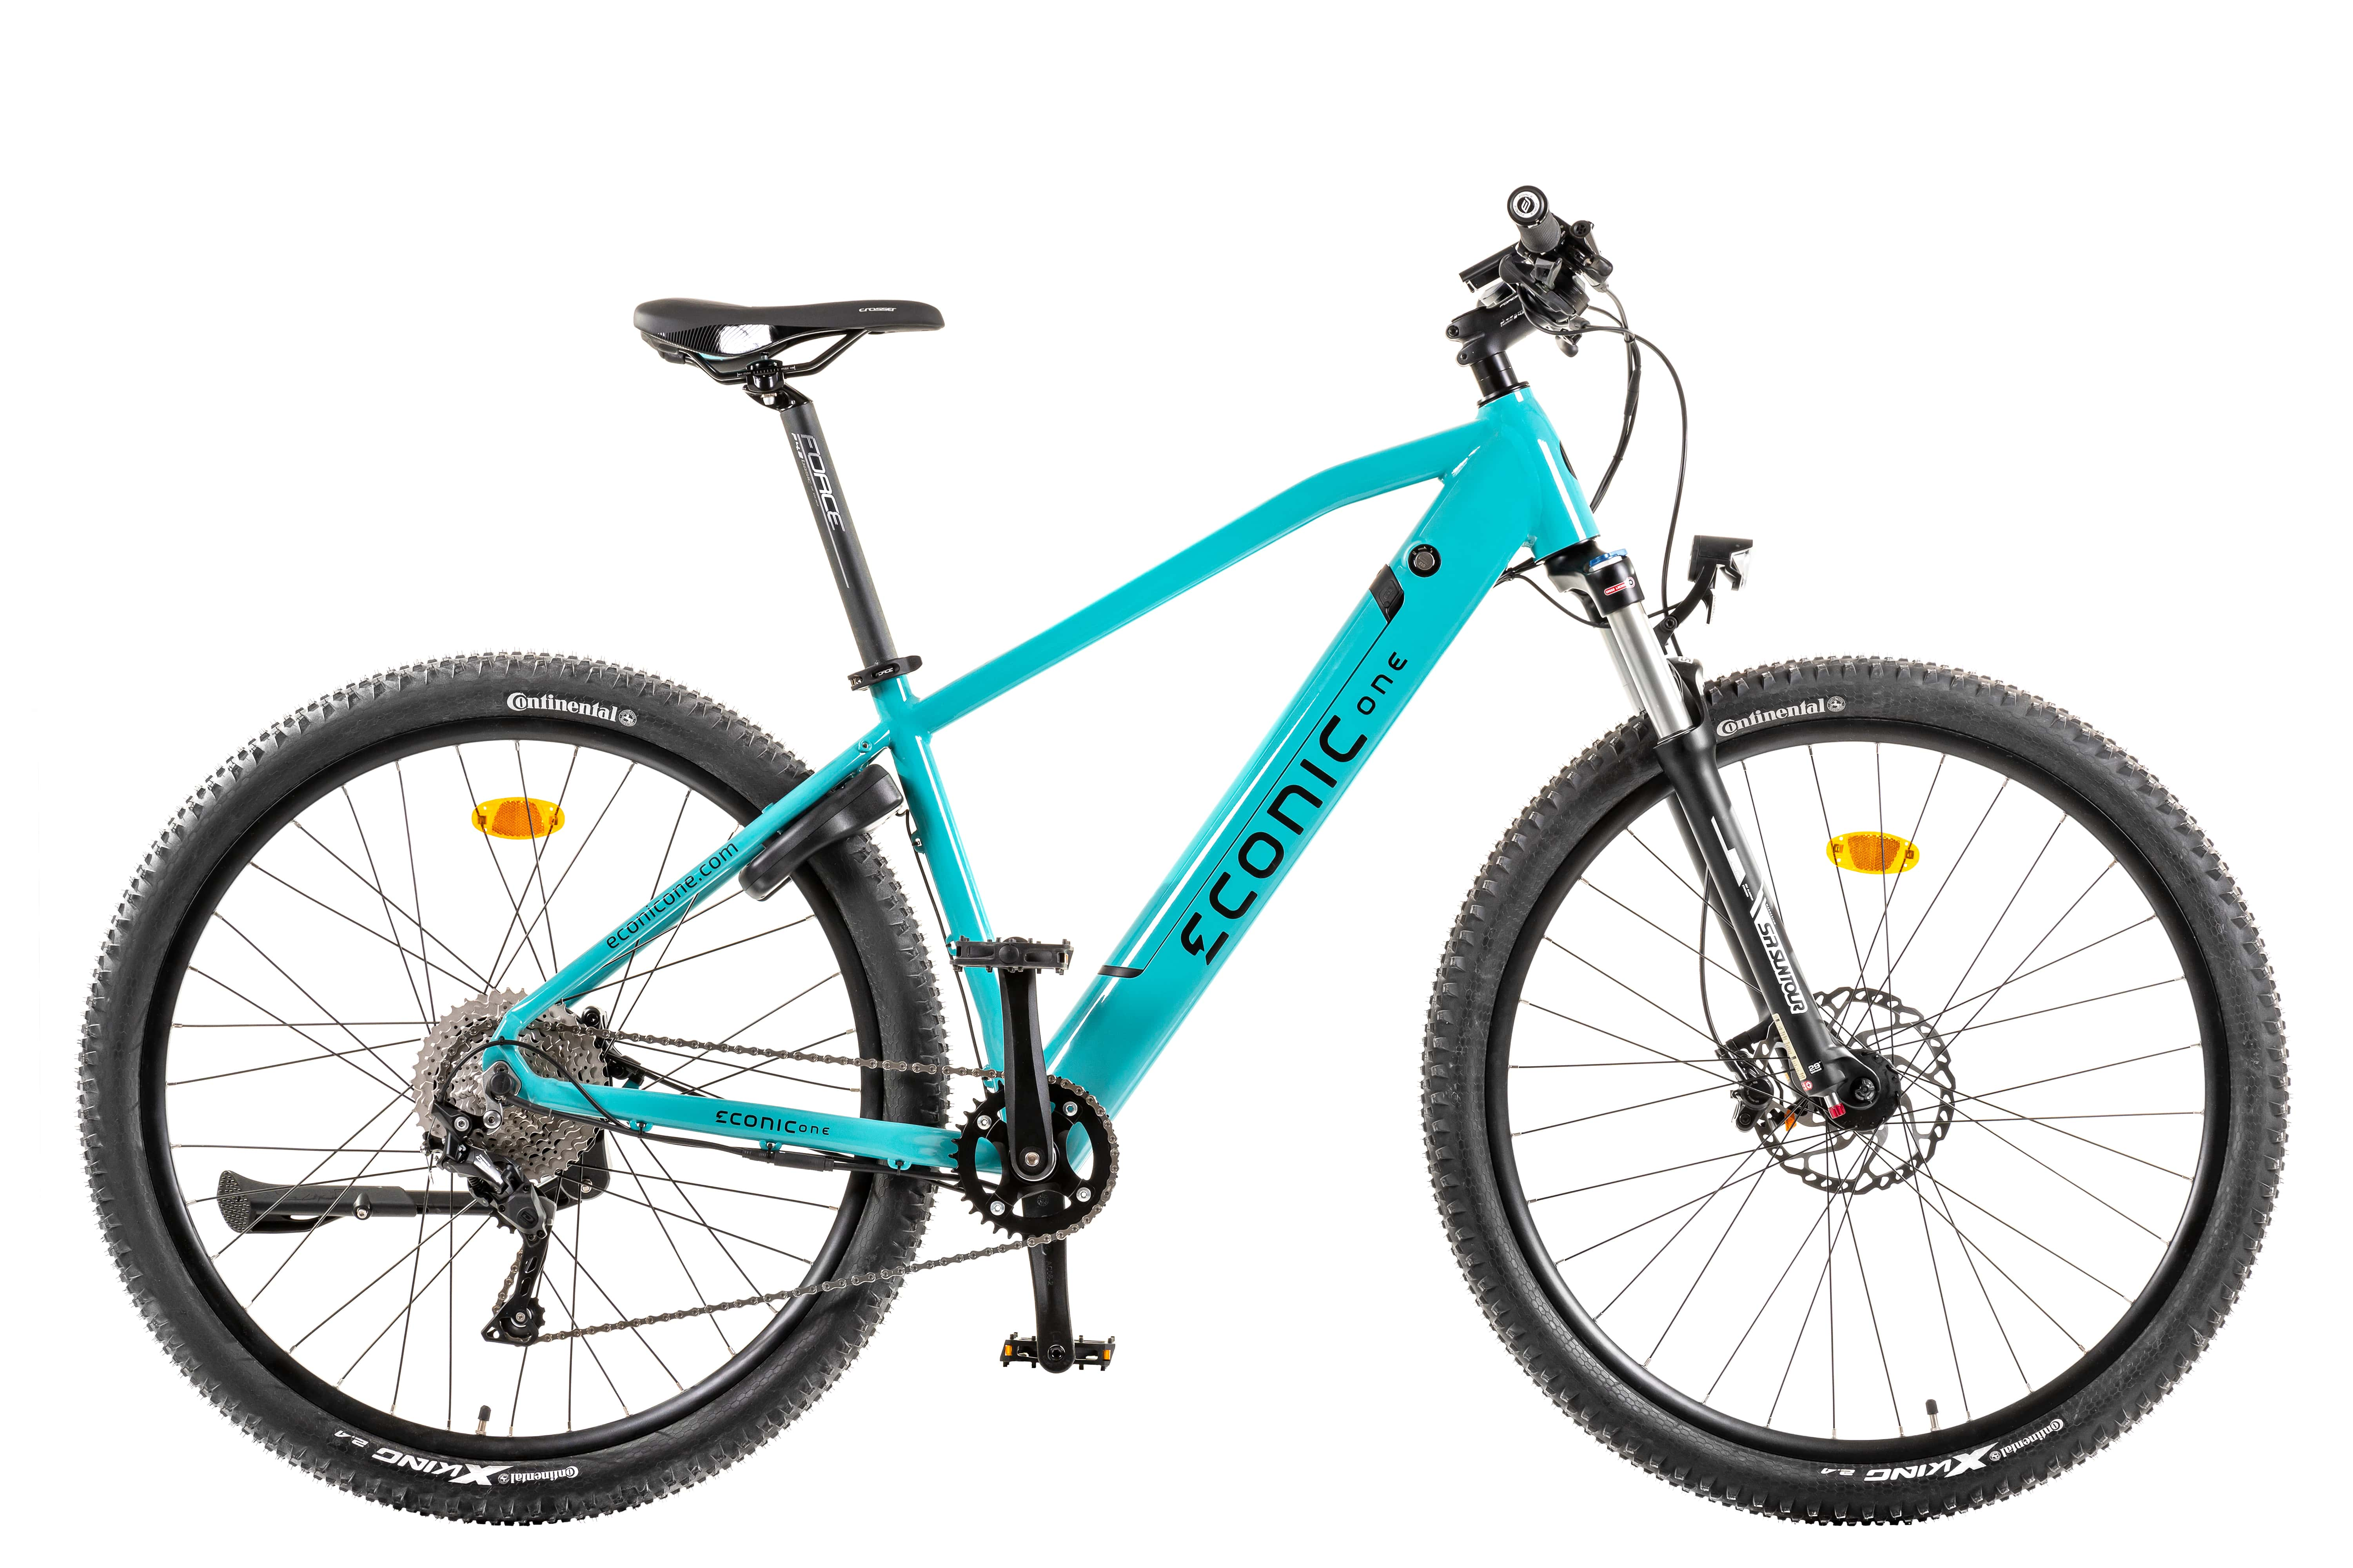 Electric Hardtail Mountain Bike Econic One XC Smart M 44cm Turquoise